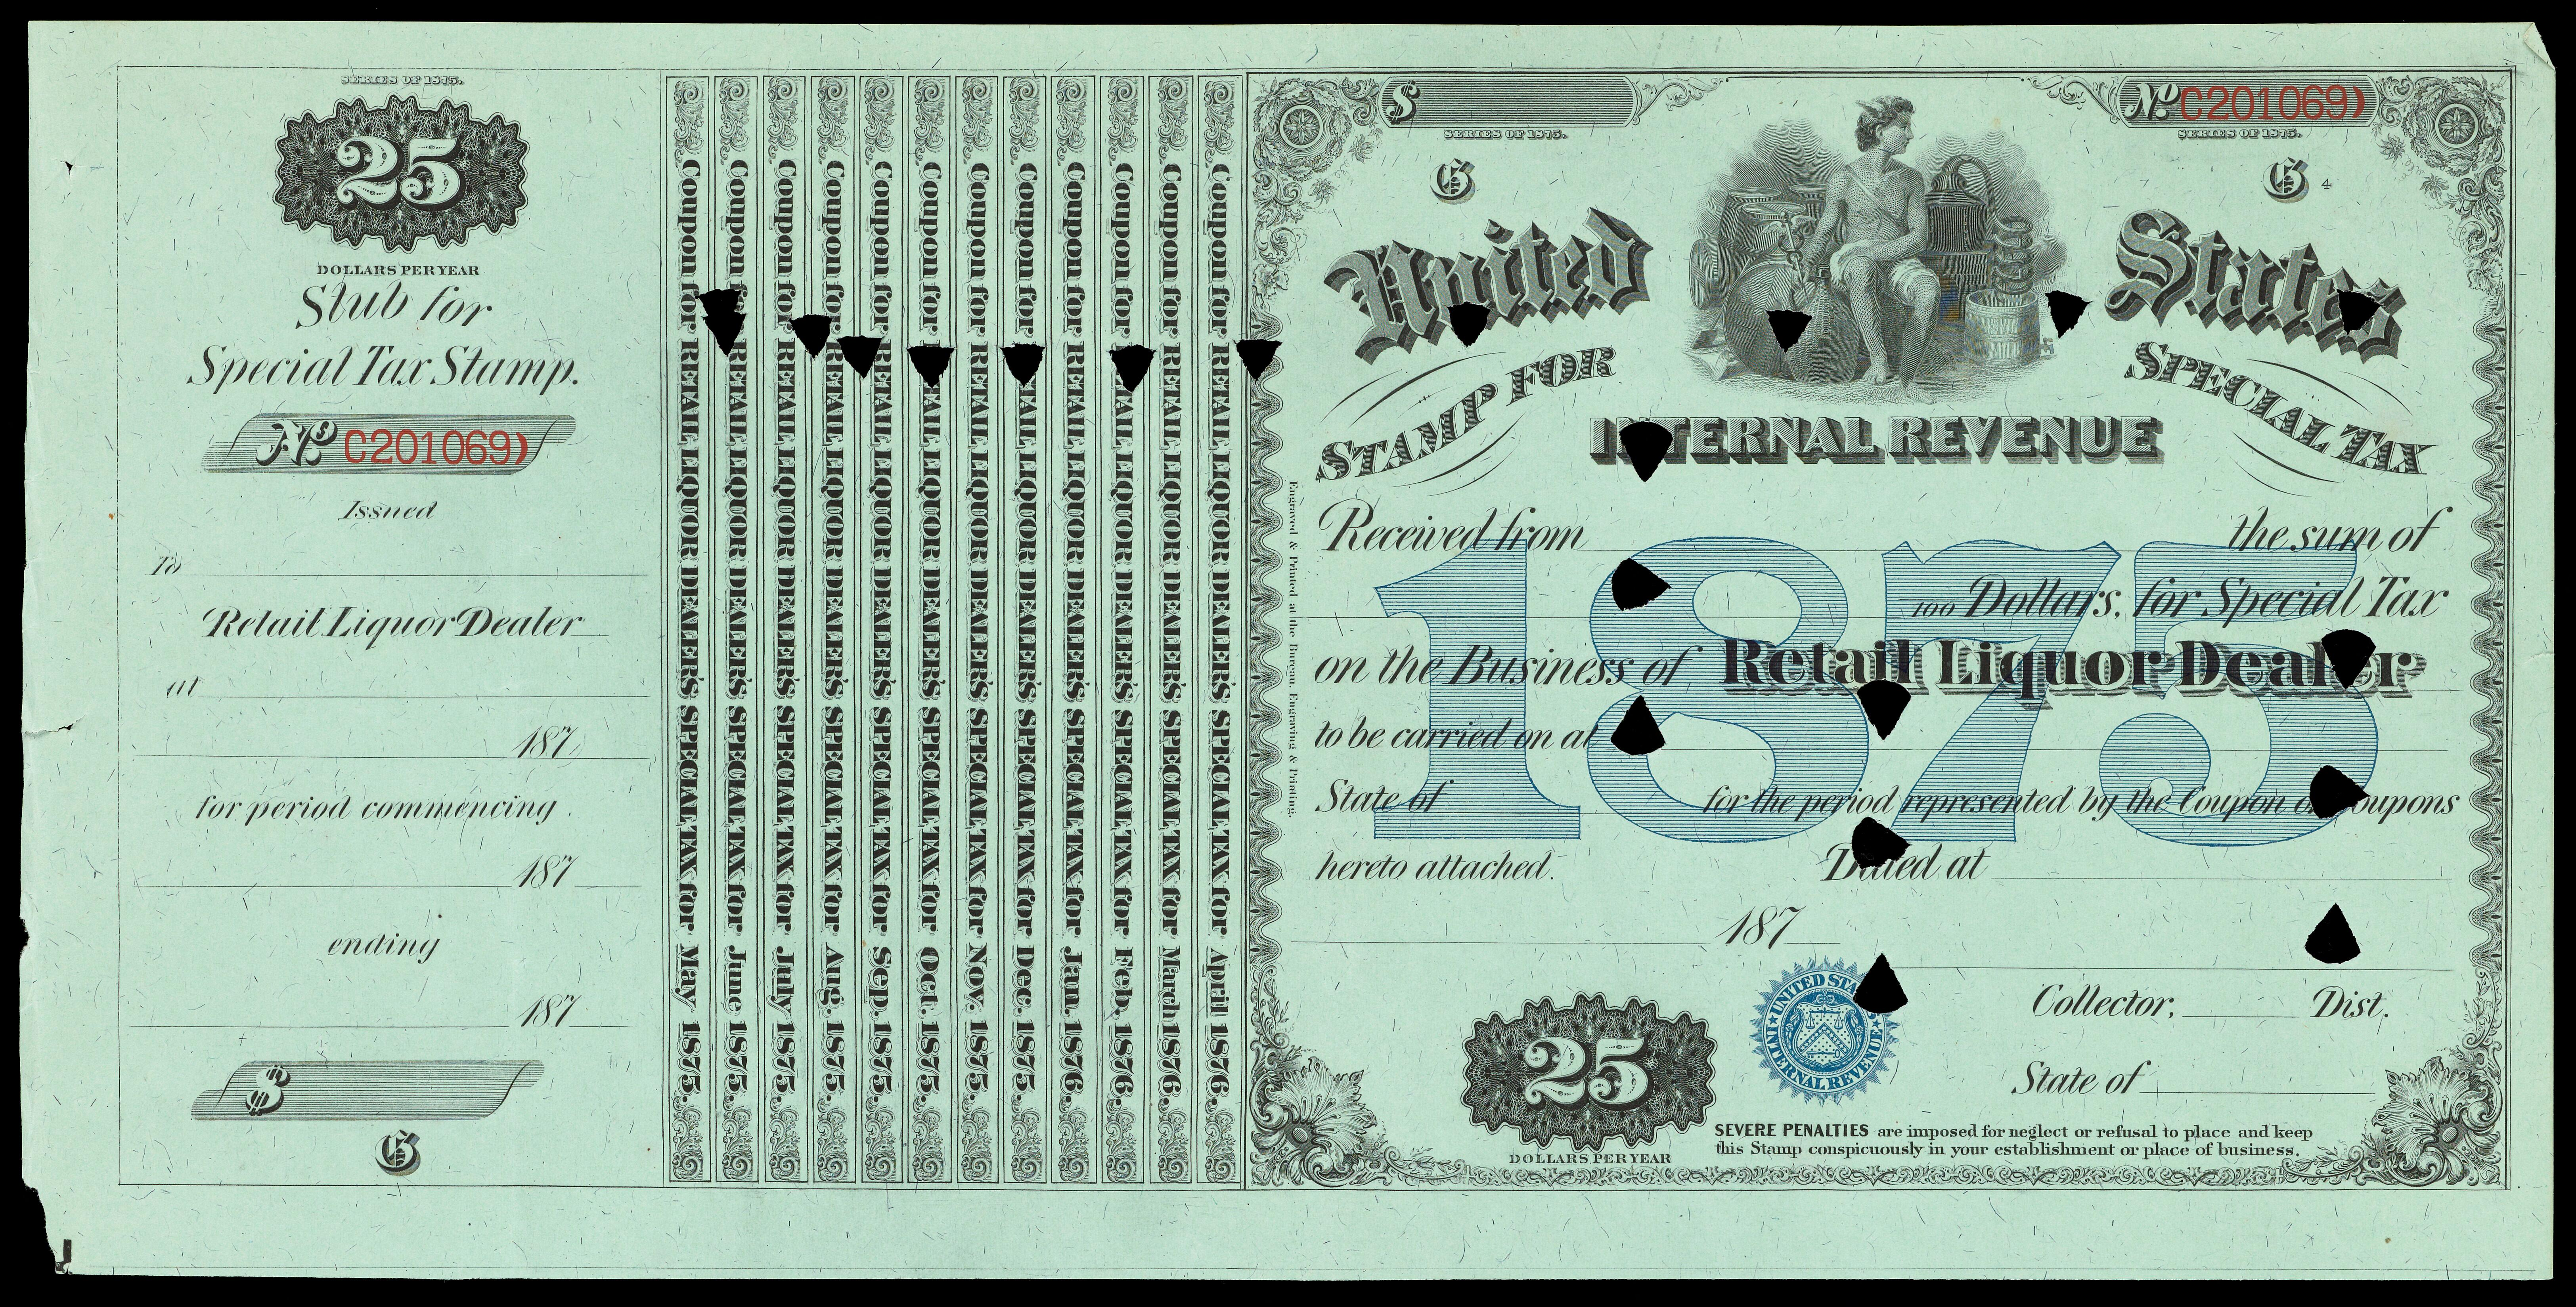 United States Internal Revenue Stamp For Special Tax Received From